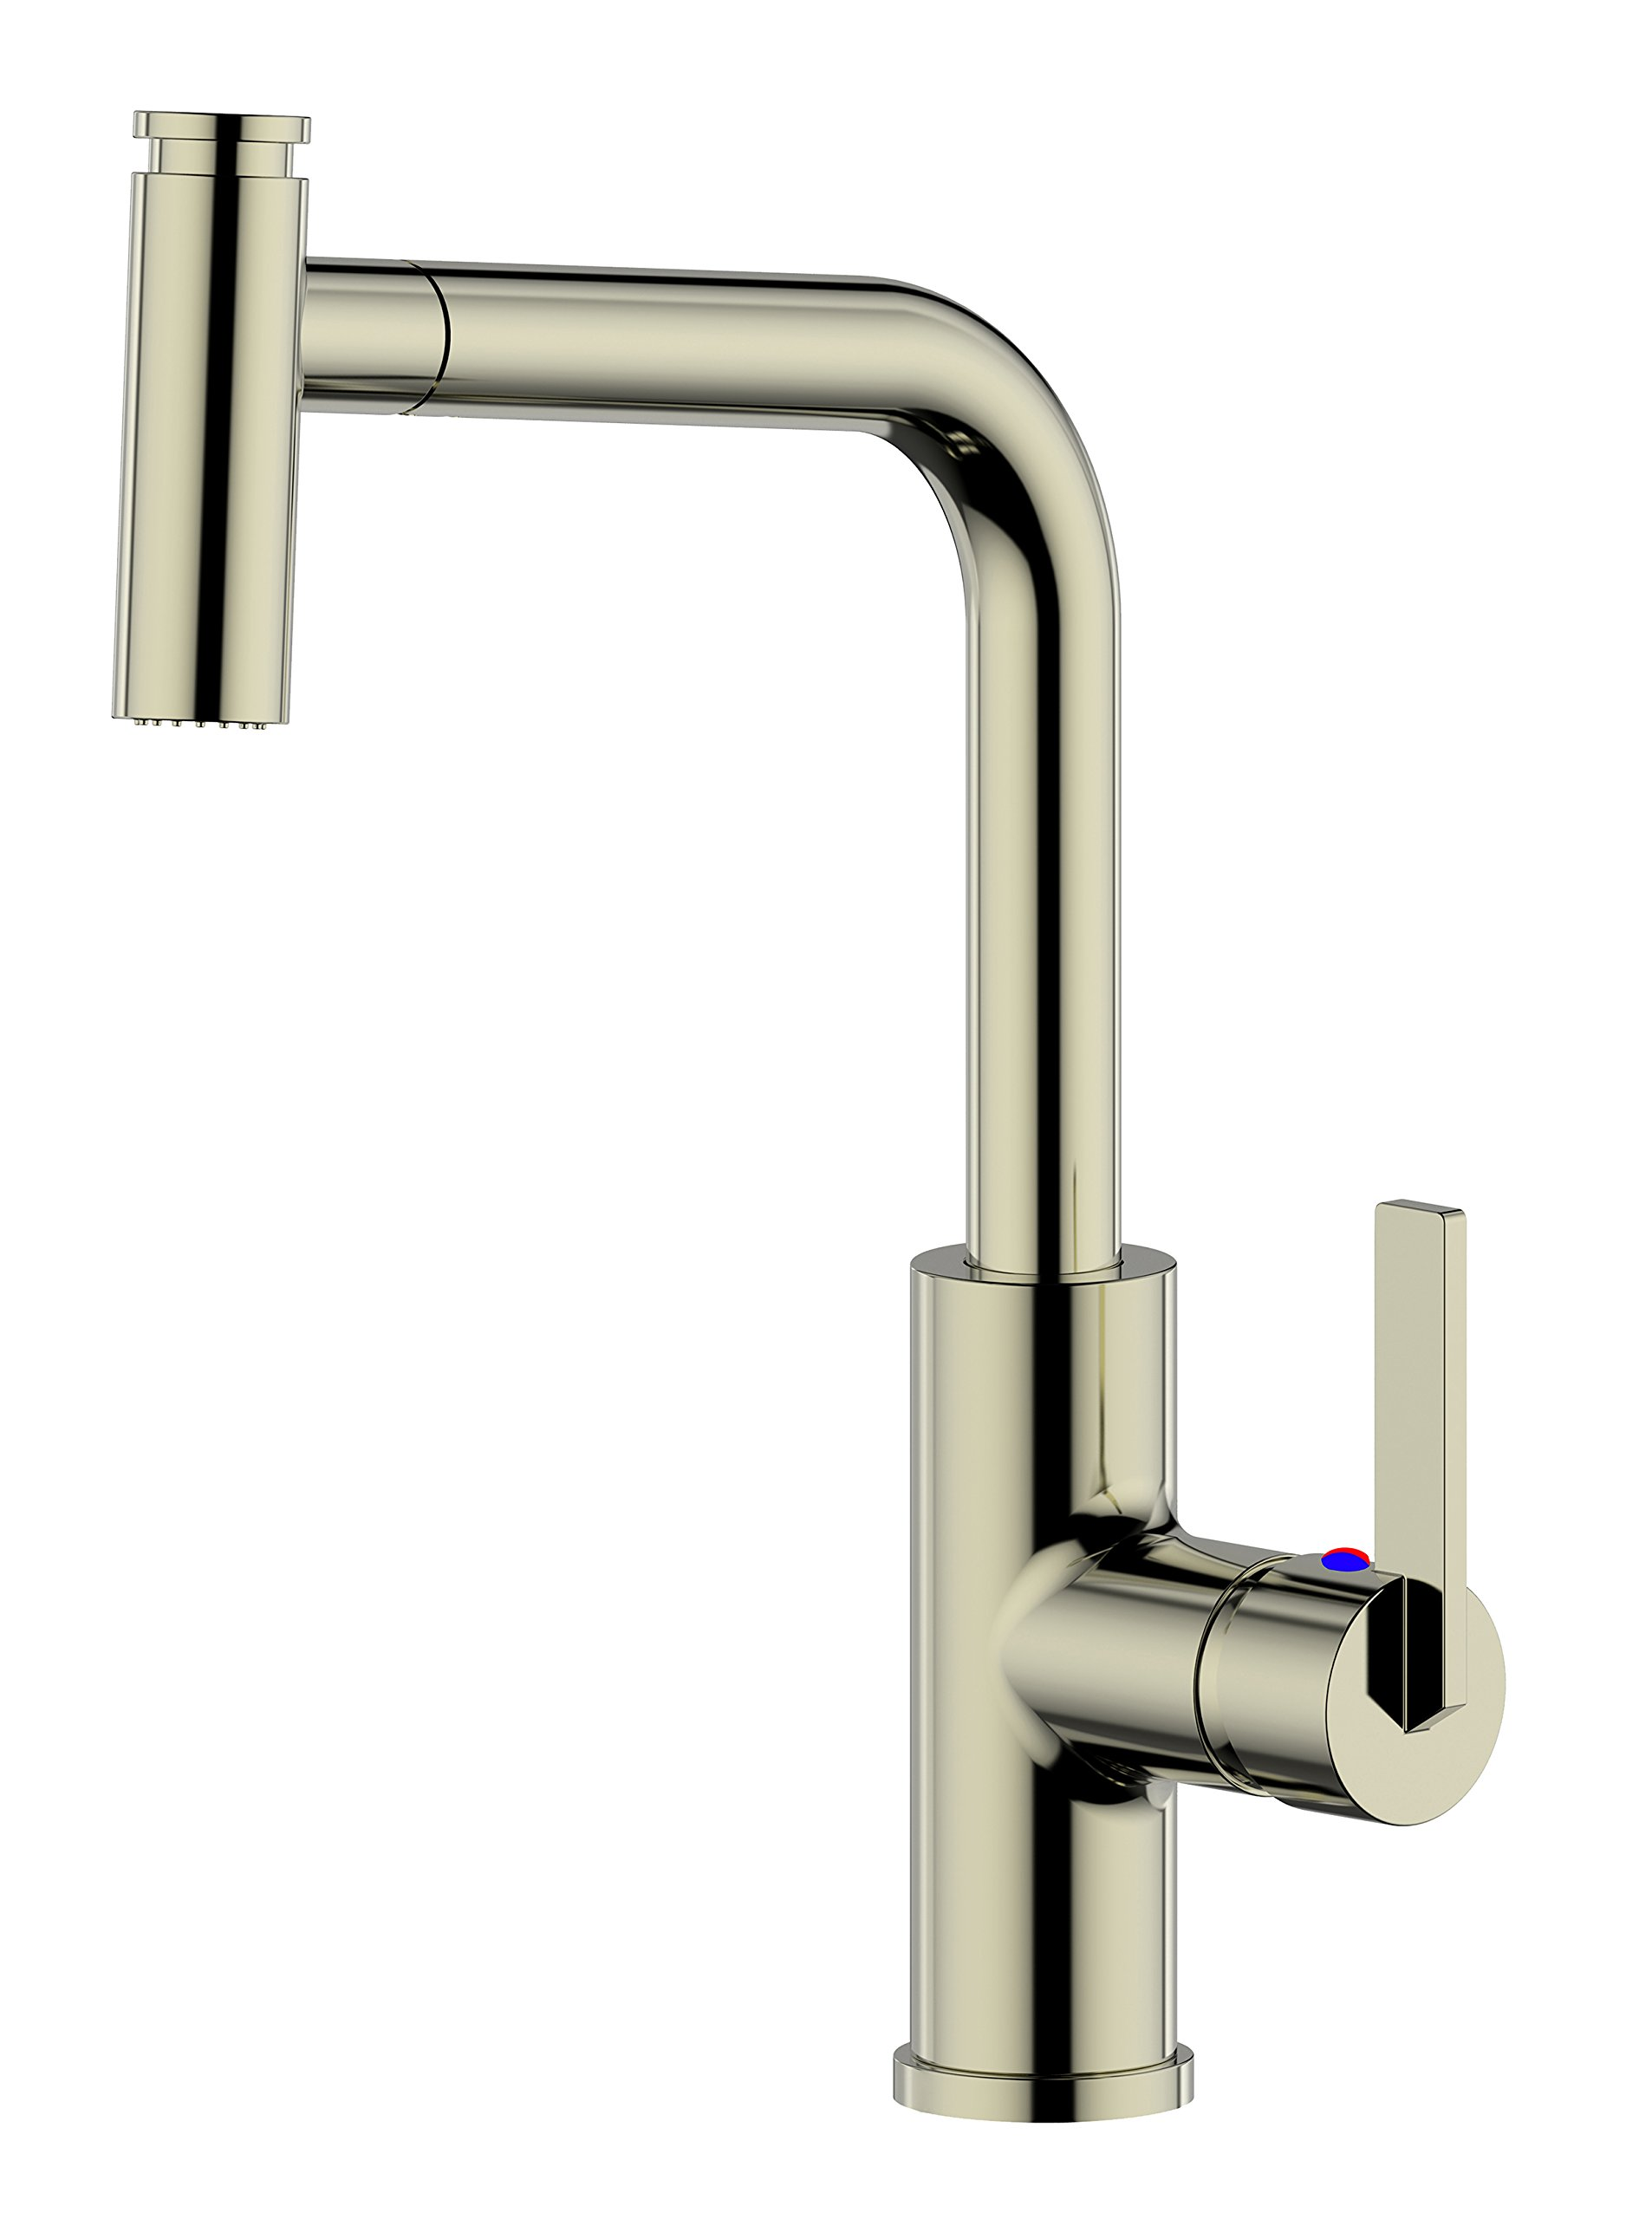 Derengge KF-8205-SS Single Handle Pull-out 1 Hole Kitchen Faucet cUPC NSF AB1953 Lead Free Brushed Nickel